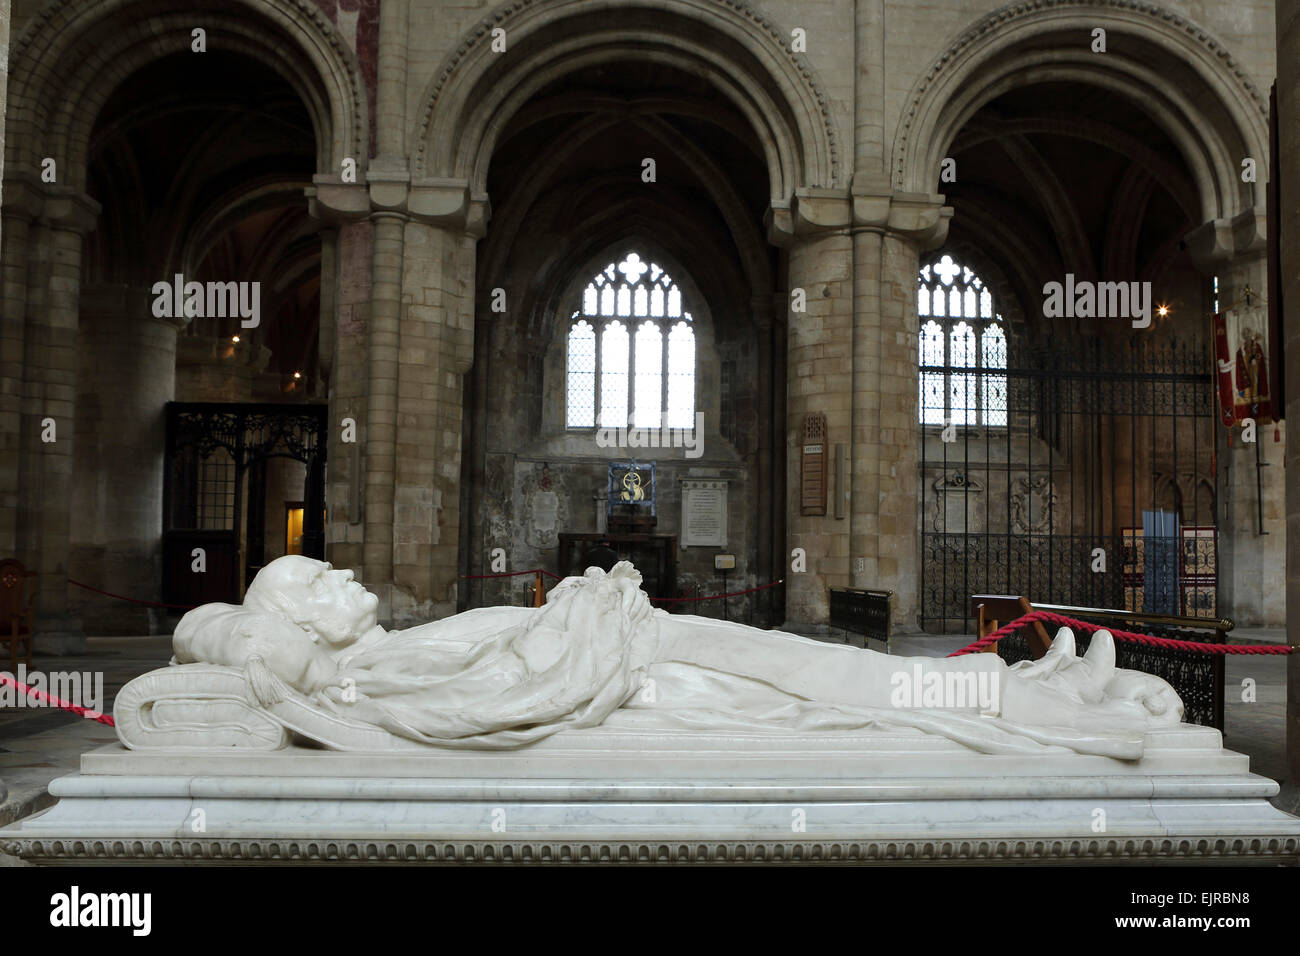 A marble memorial to William Connor Magee (1821 - 1891) at the cathedral in Peterborough, United Kingdom. - Stock Image